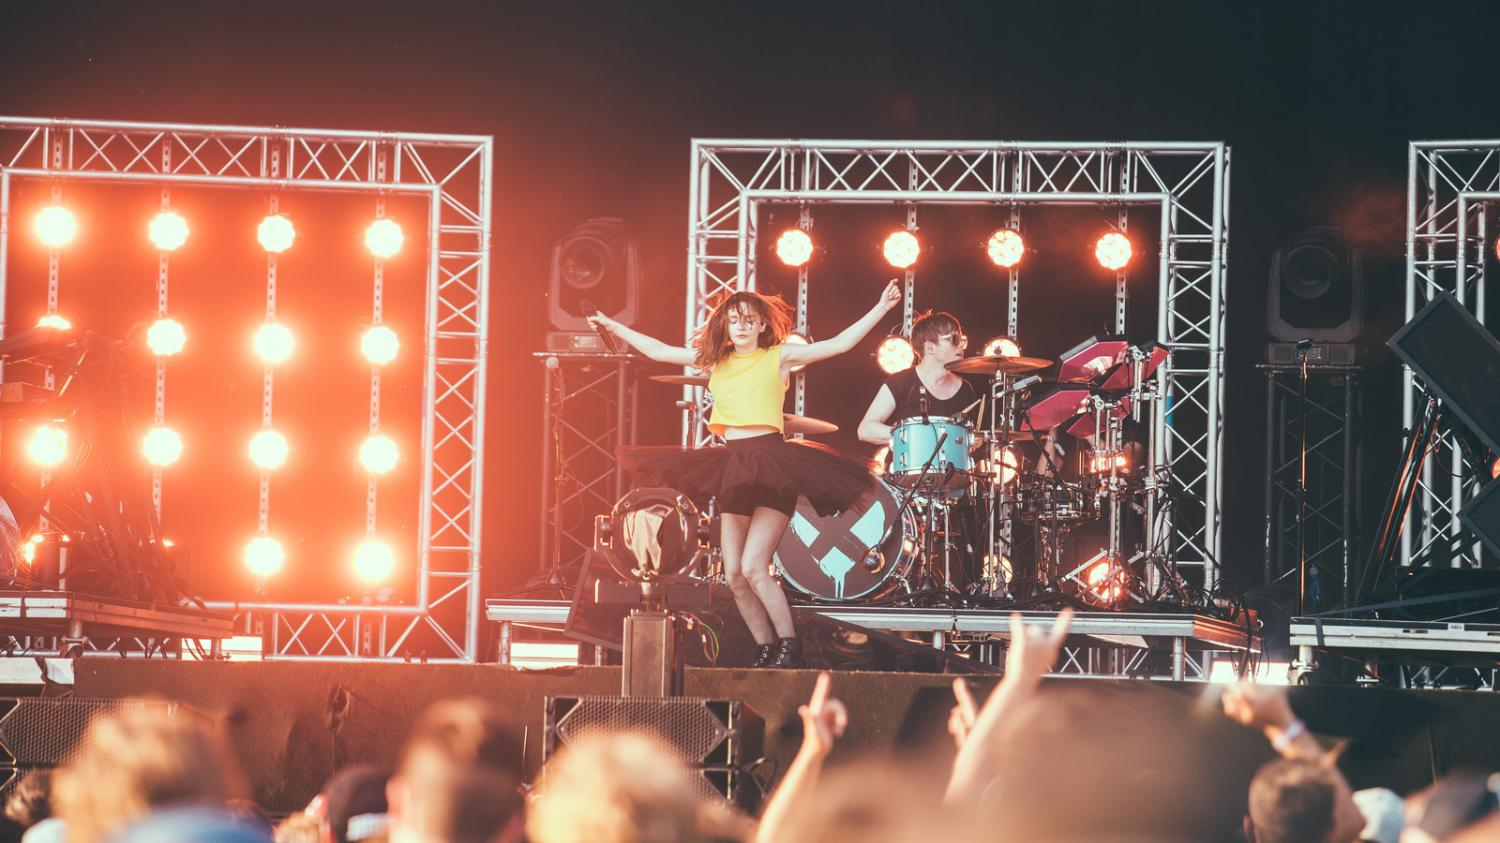 Frontfrau Lauren Mayberry von den CHVRCHES beim Open Air St. Gallen 2018